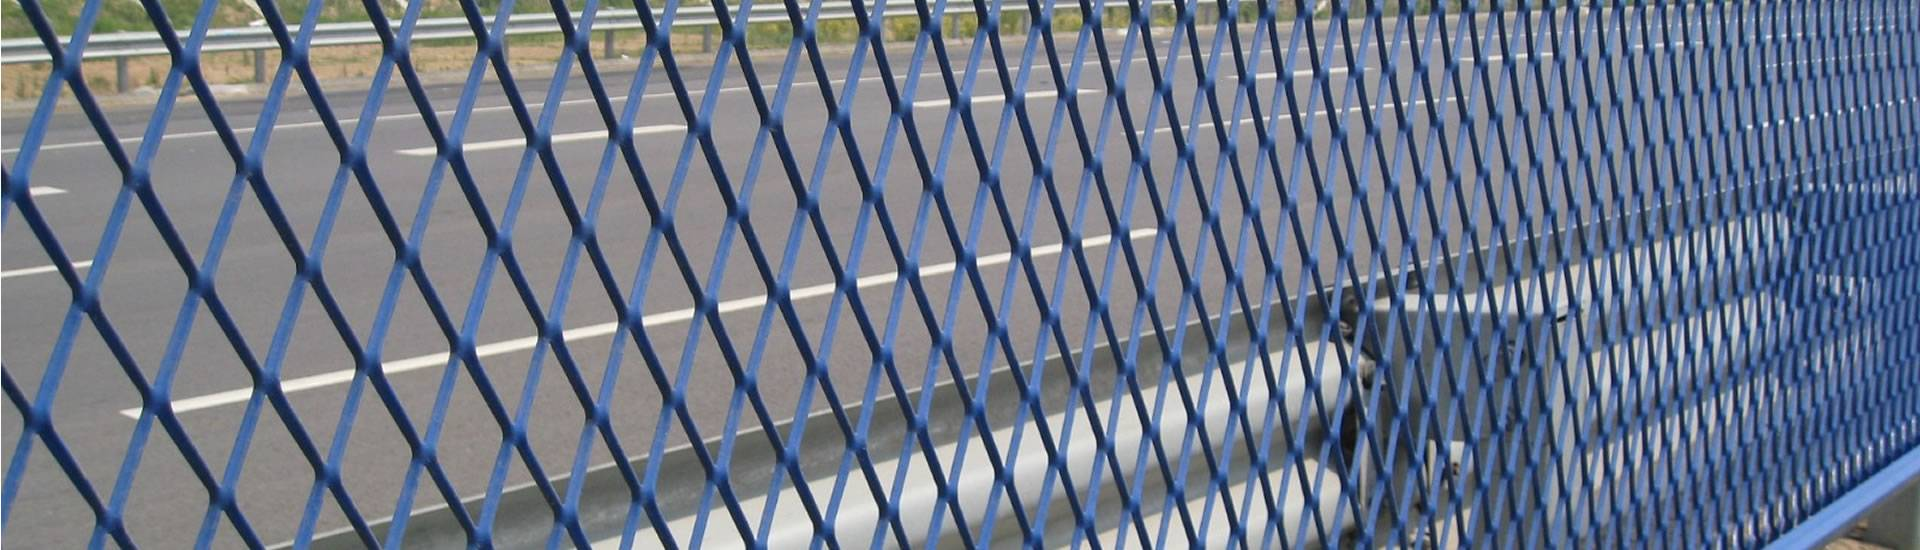 Blue expanded metal sheets are installed on the highway.